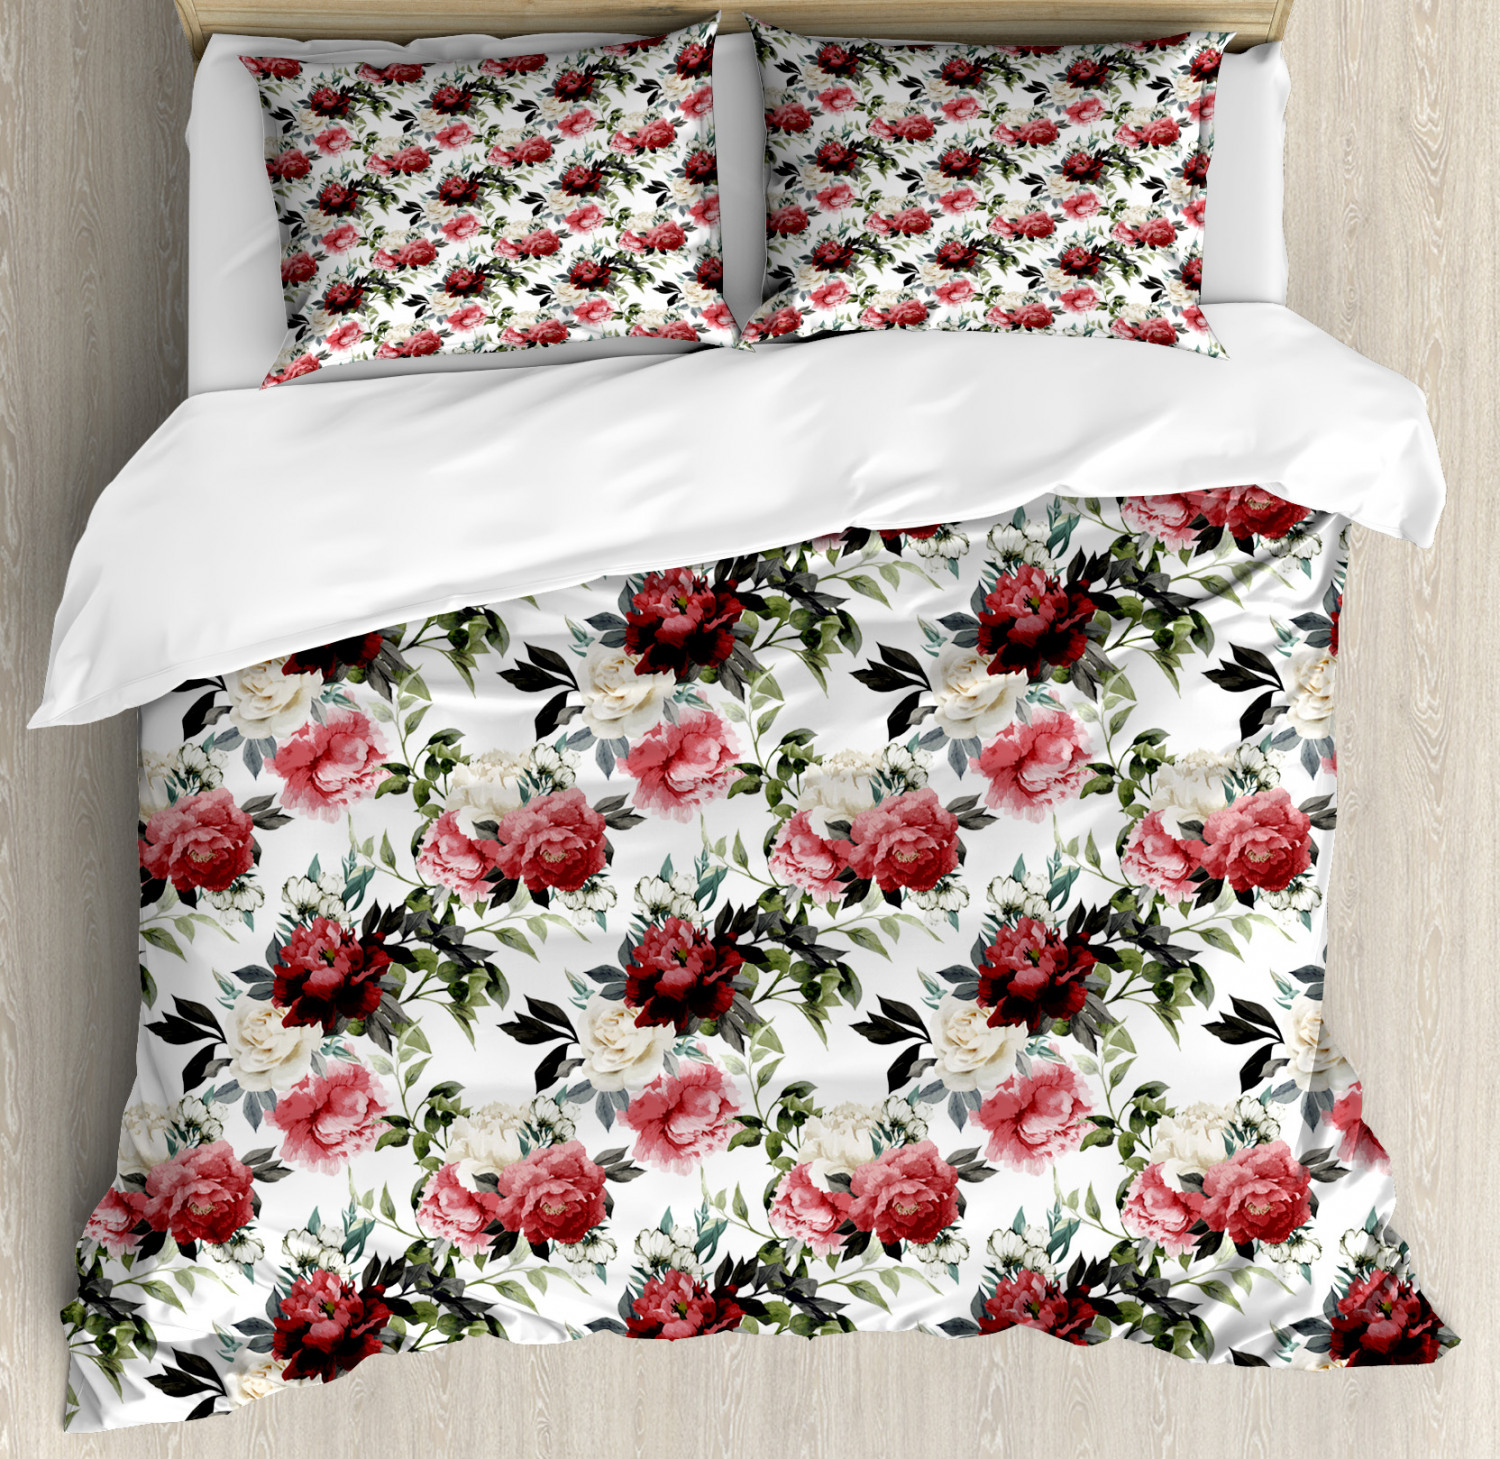 shabby chic duvet cover set floral flower roses buds with leaves and branches art print decorative bedding set with pillow shams red maroon and